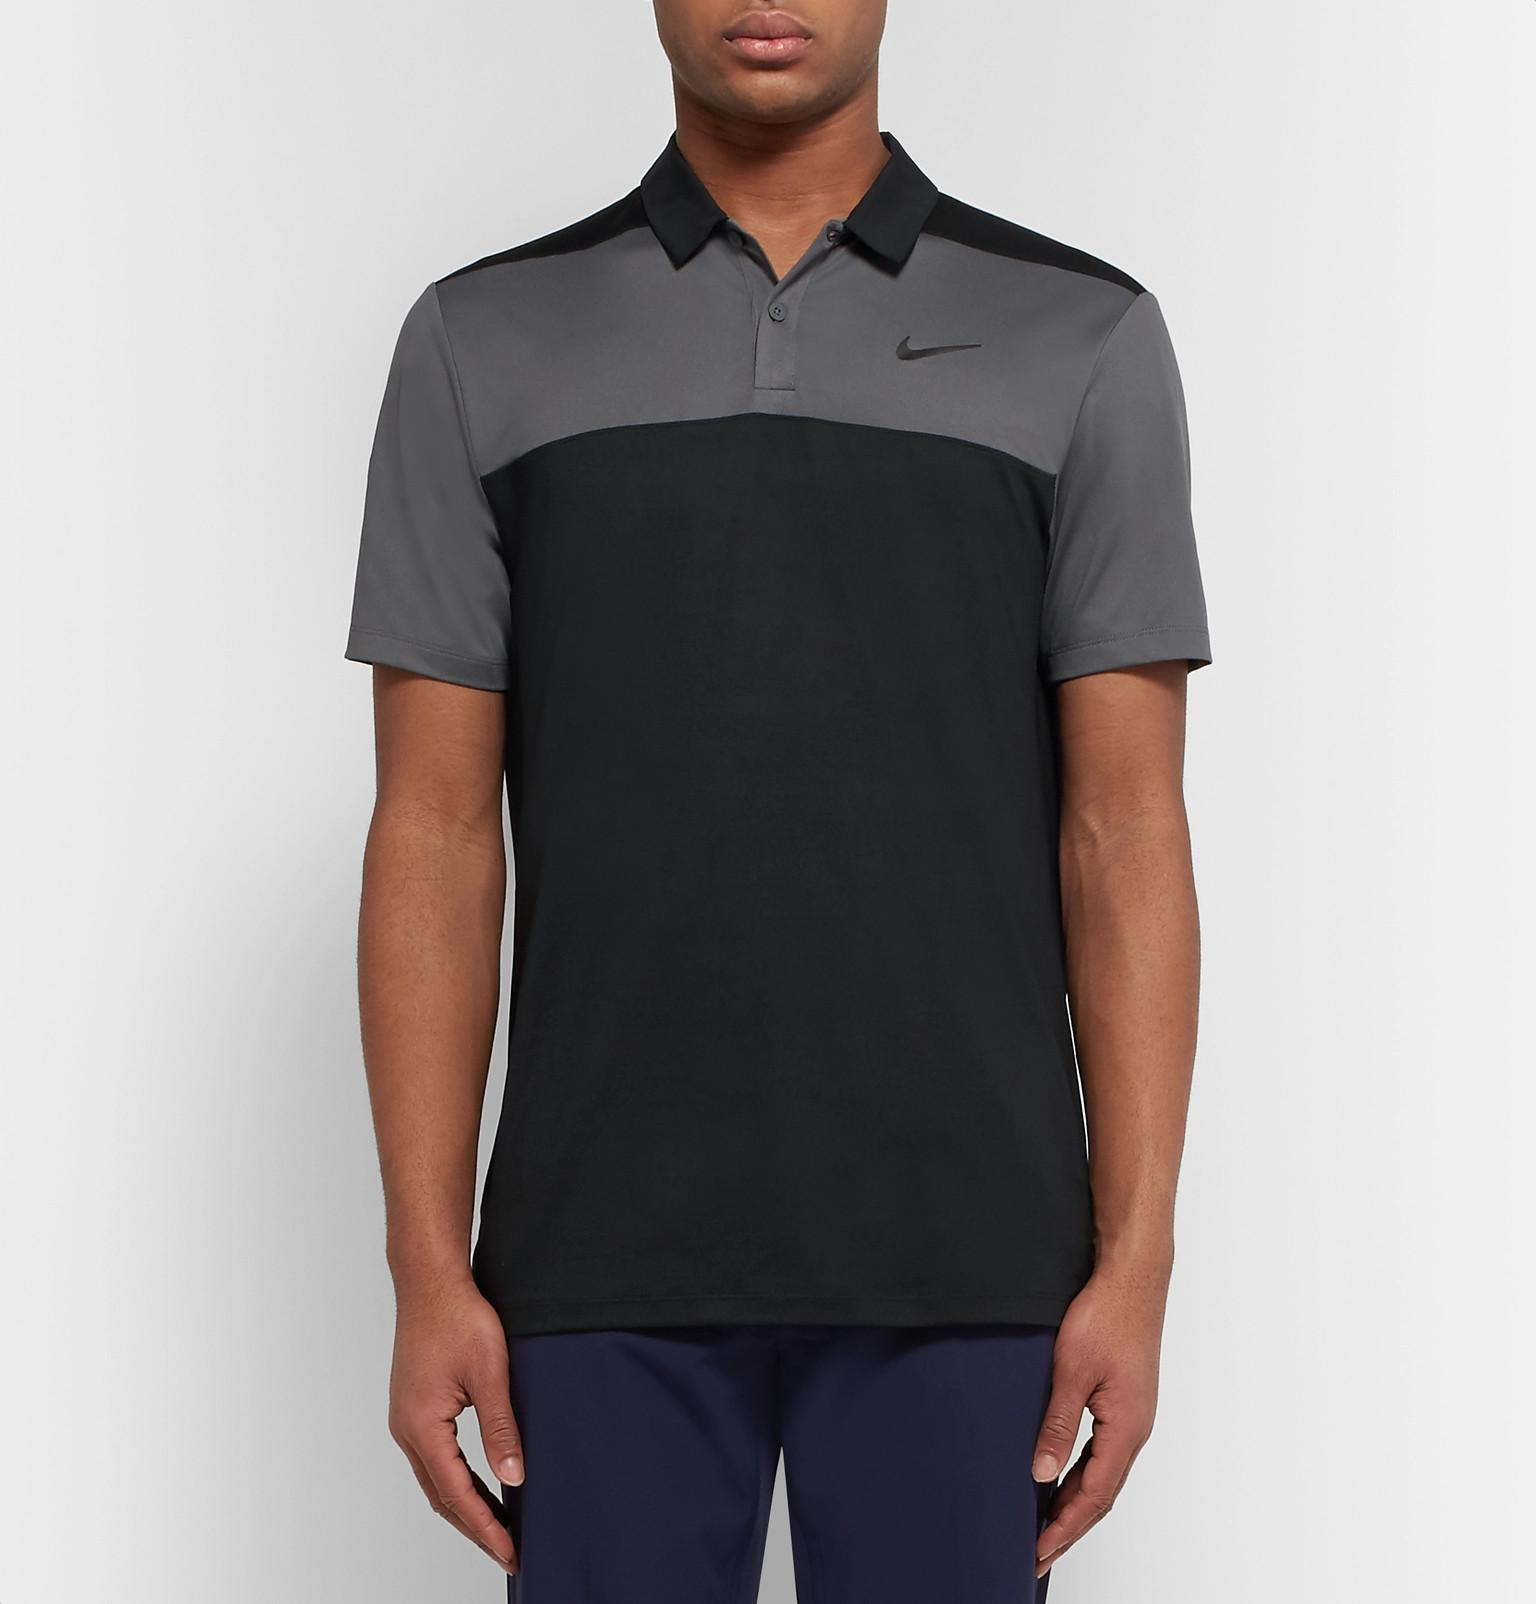 37ab2c8d Nike Two-tone Dri-fit Golf Polo Shirt in Gray for Men - Lyst